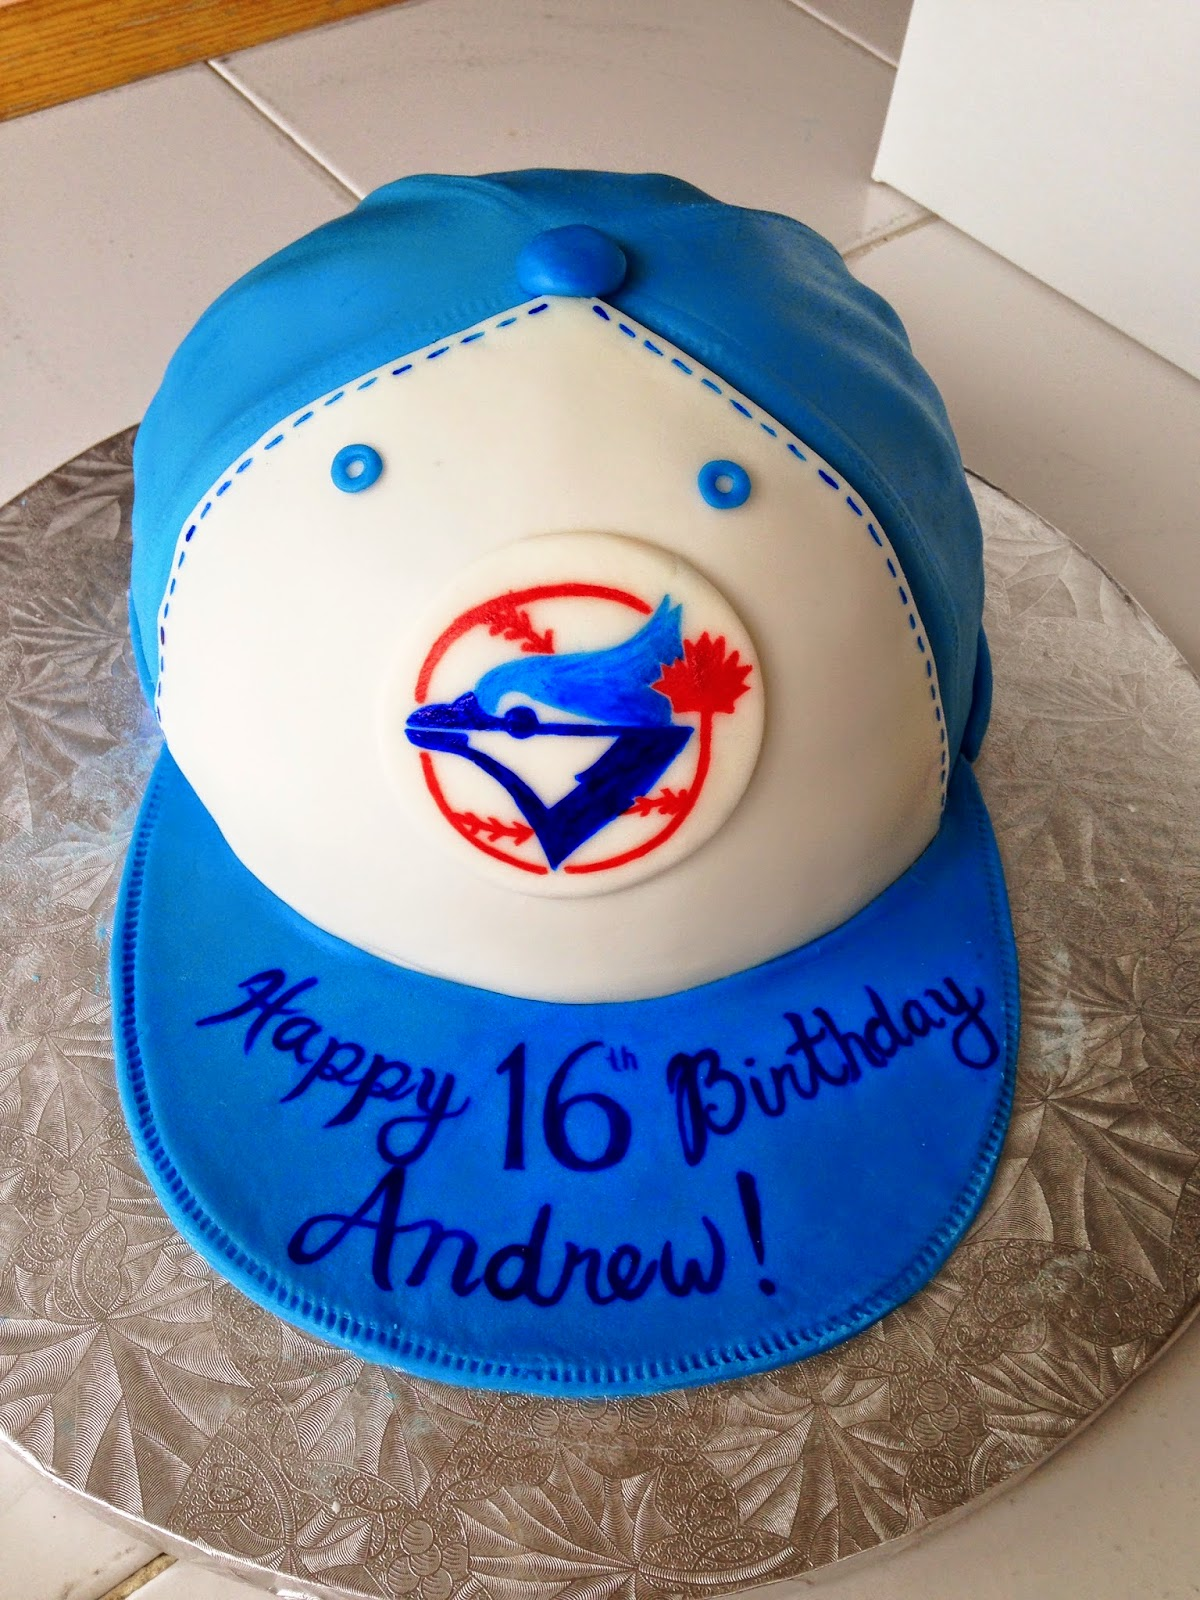 Blue Jays Cake Images : Cake for College: Wrapping Up: Tiffany Box, Wedding Cake ...